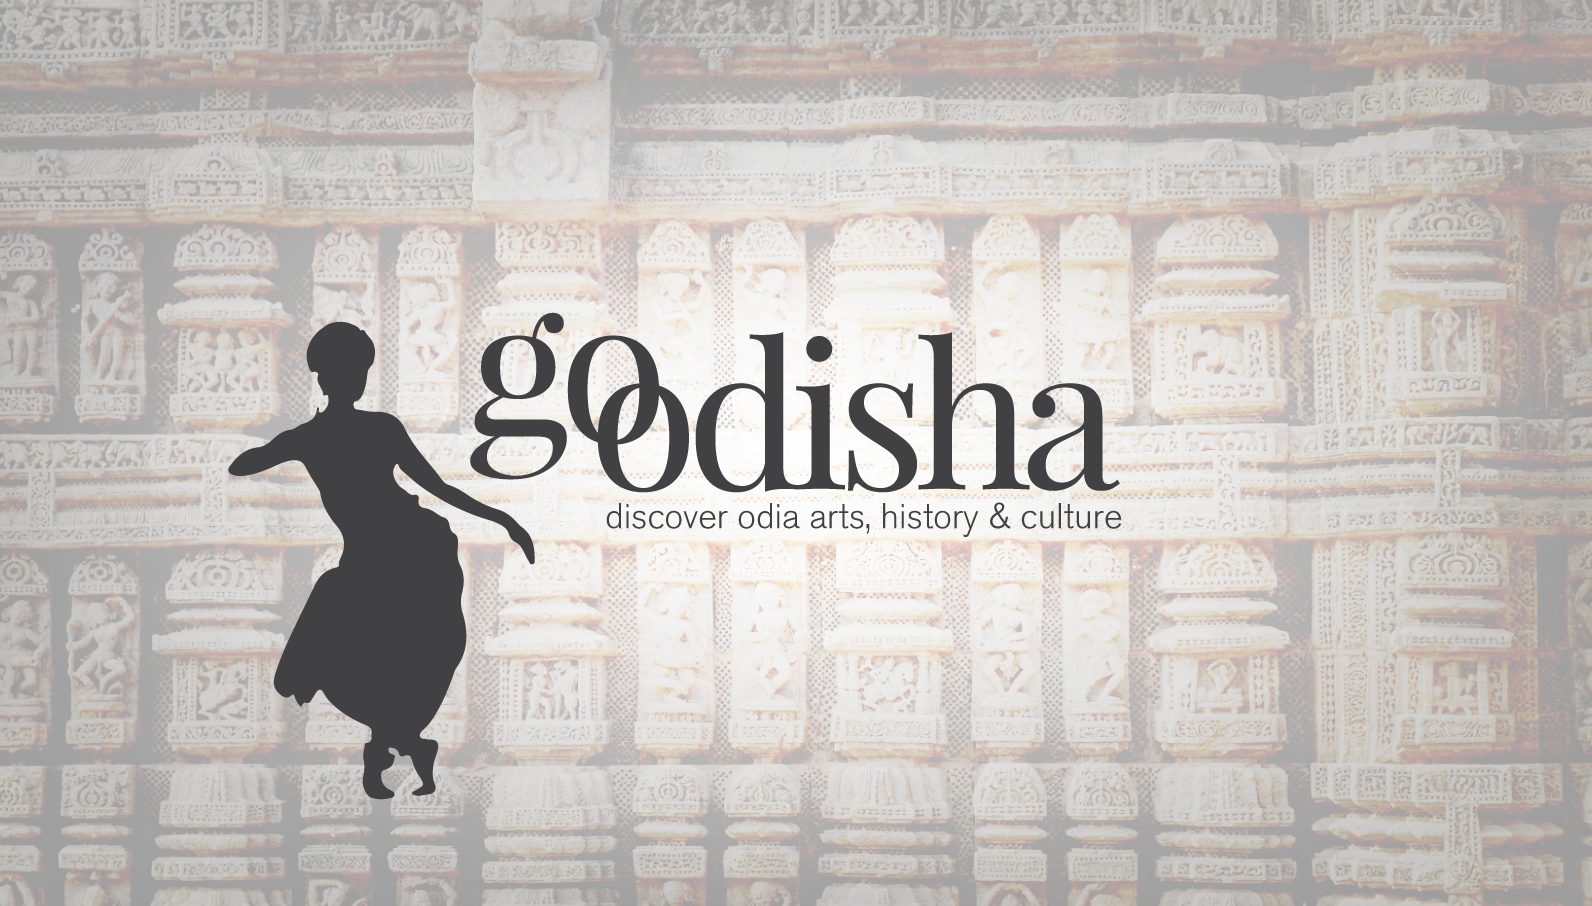 Go Odisha: Discover Odia arts, history and culture